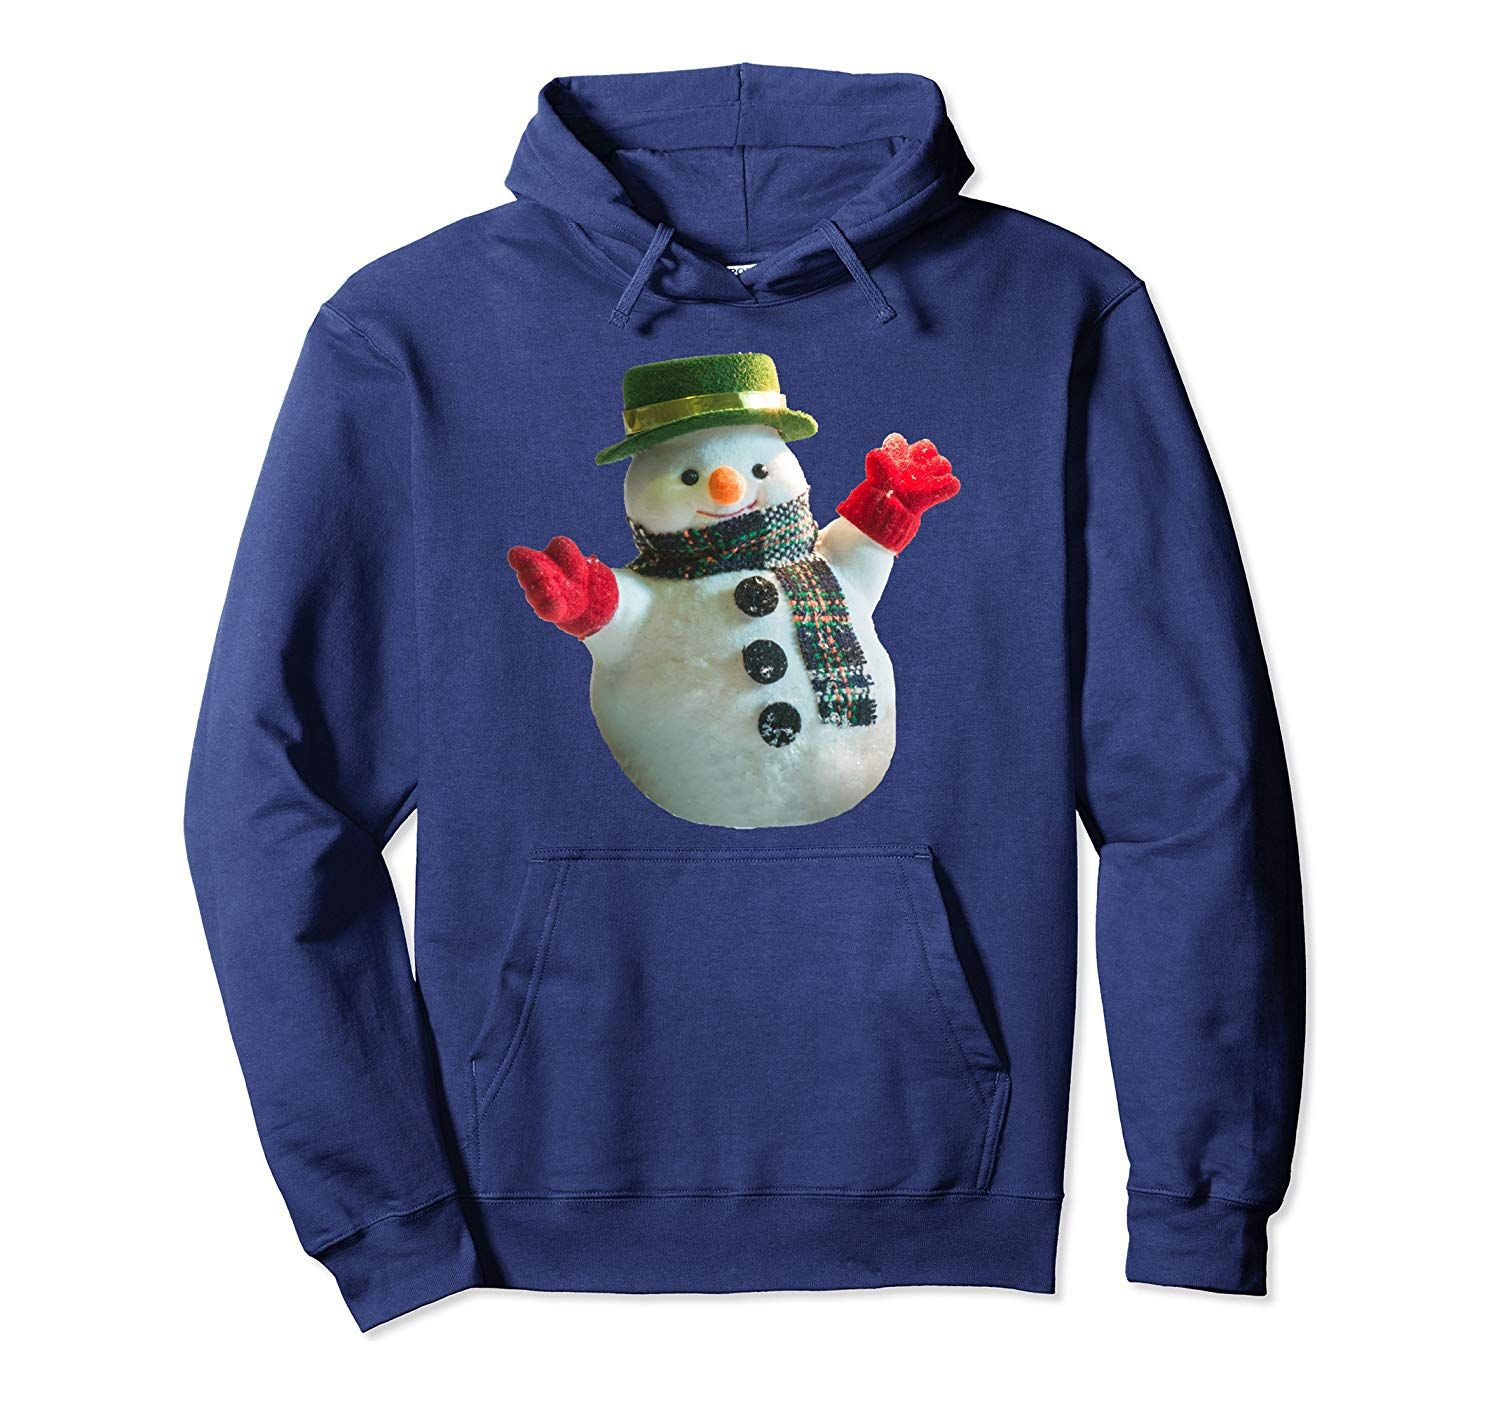 Cute dressed Snowman funny Christmas Costume New Year's Gift Pullover Hoodie